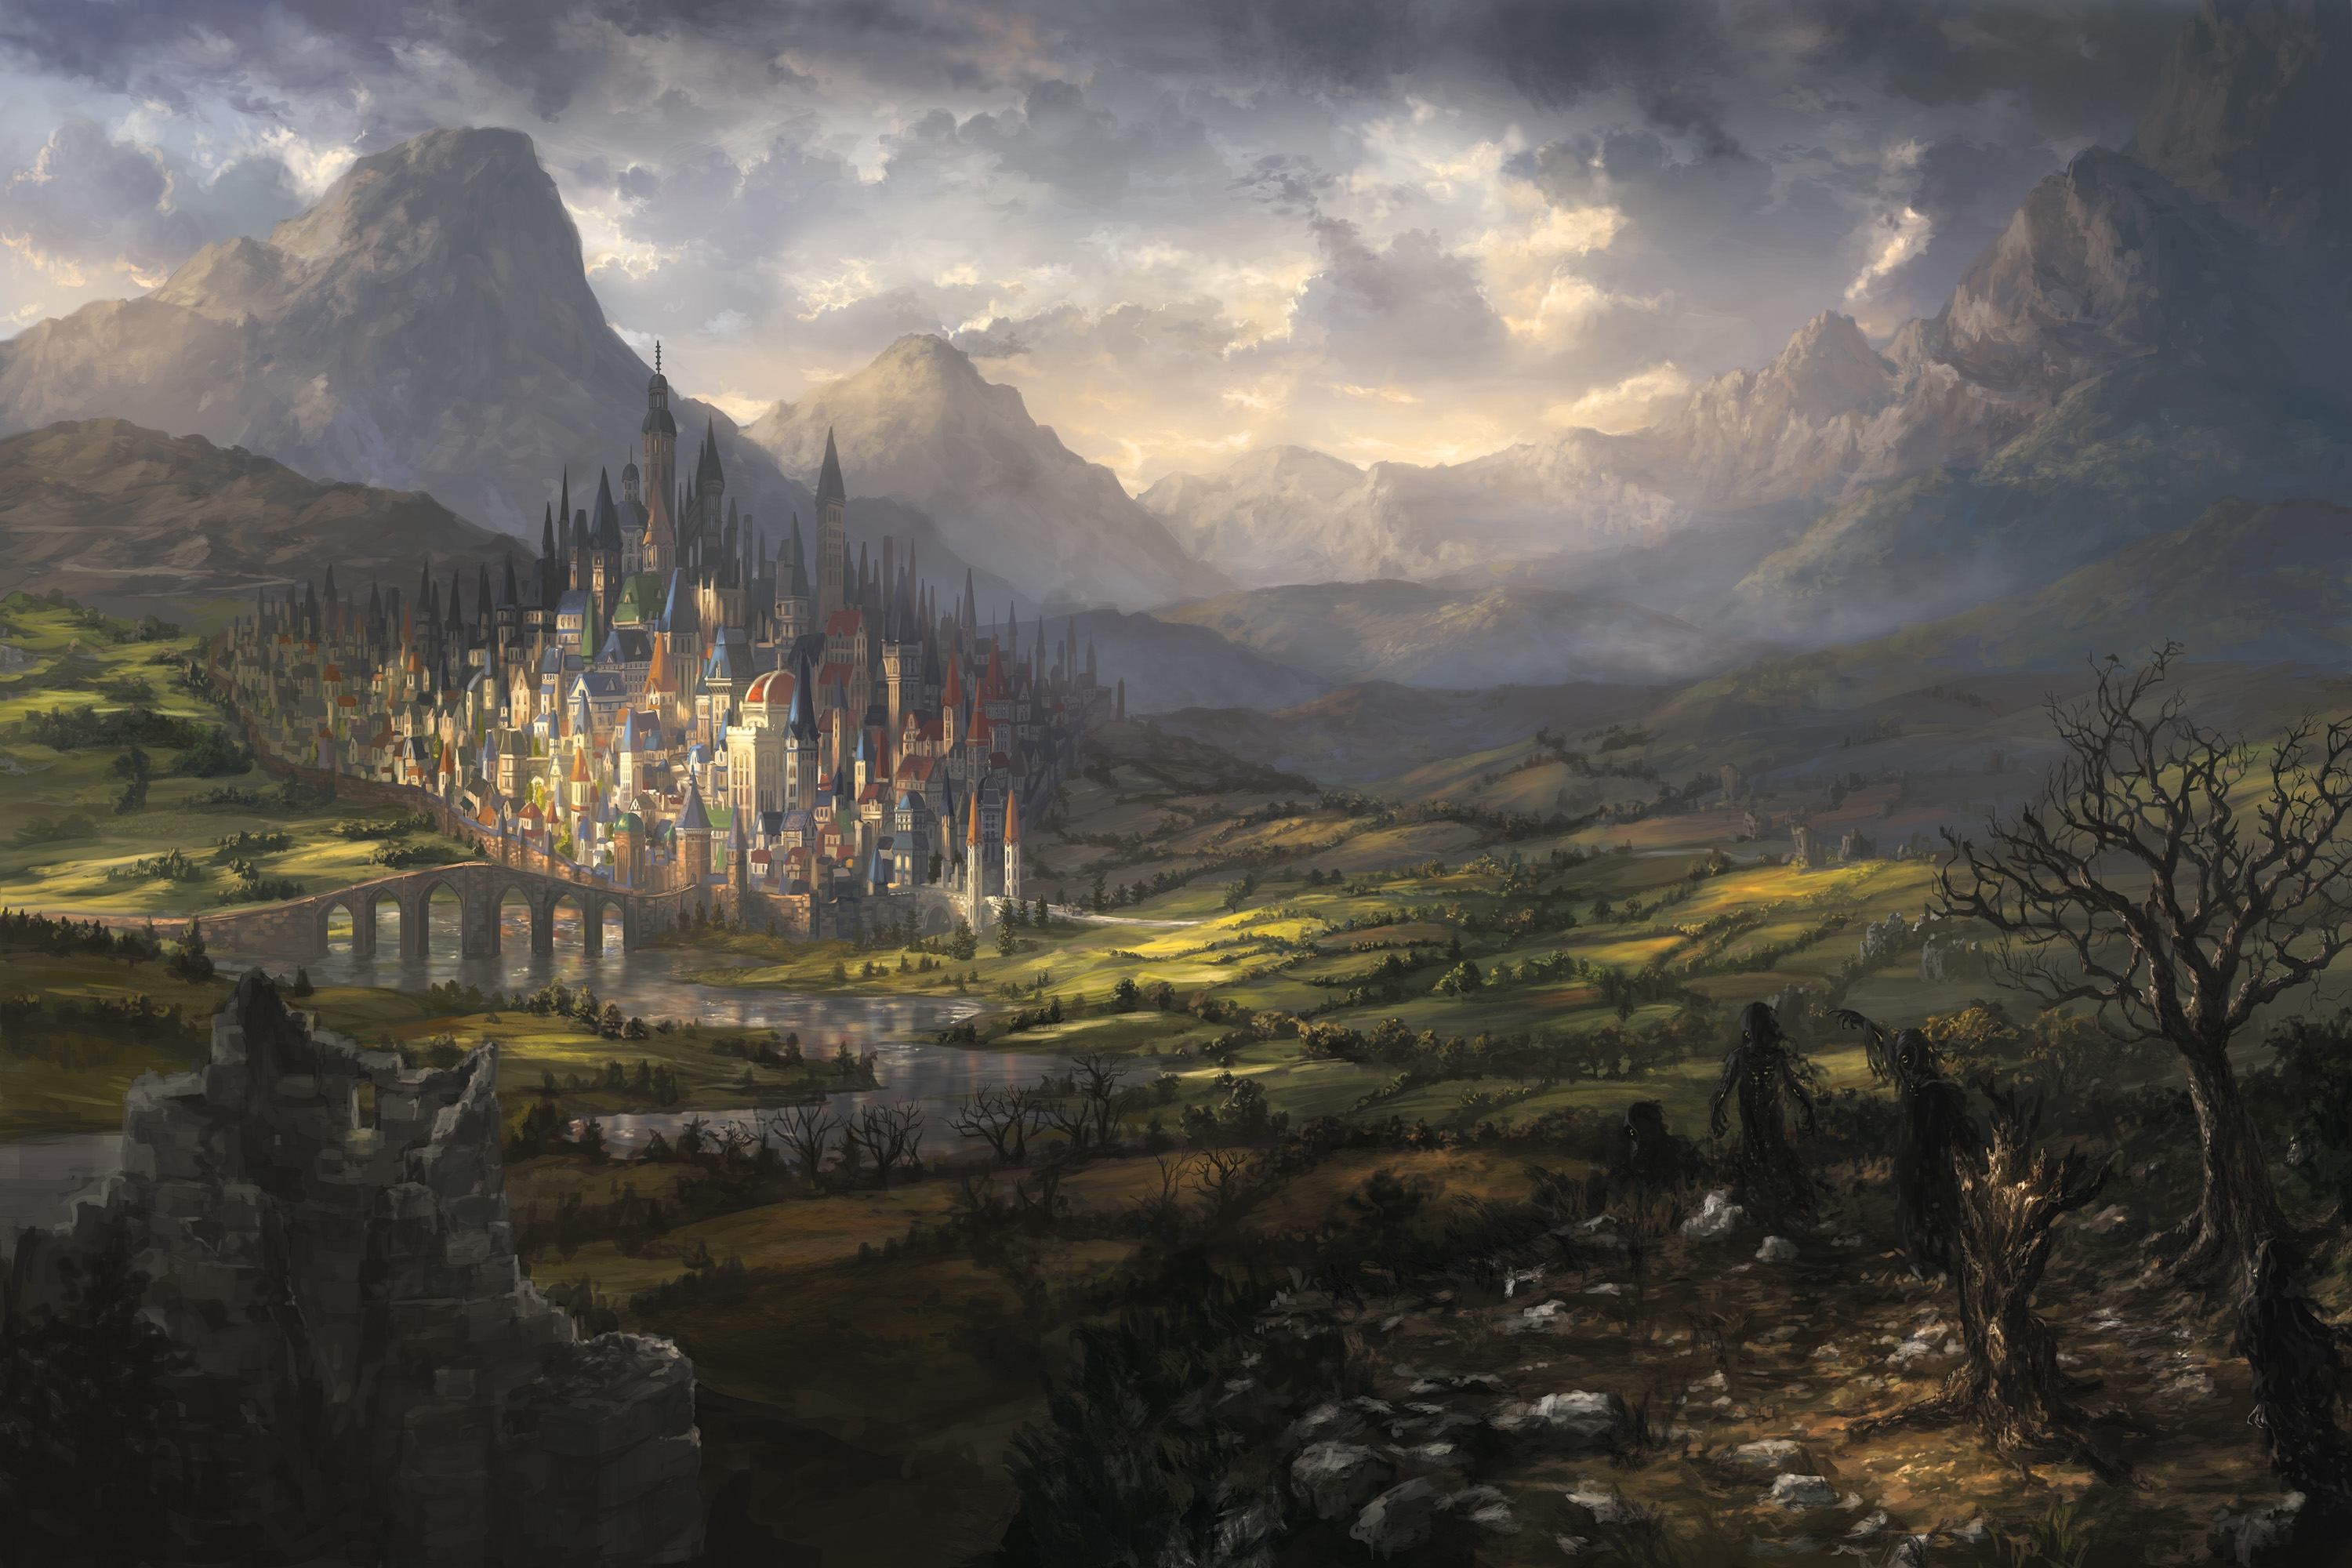 Fall Desktop Wallpaper Themes Download 2560x1600 Fantasy Landscape Castle City